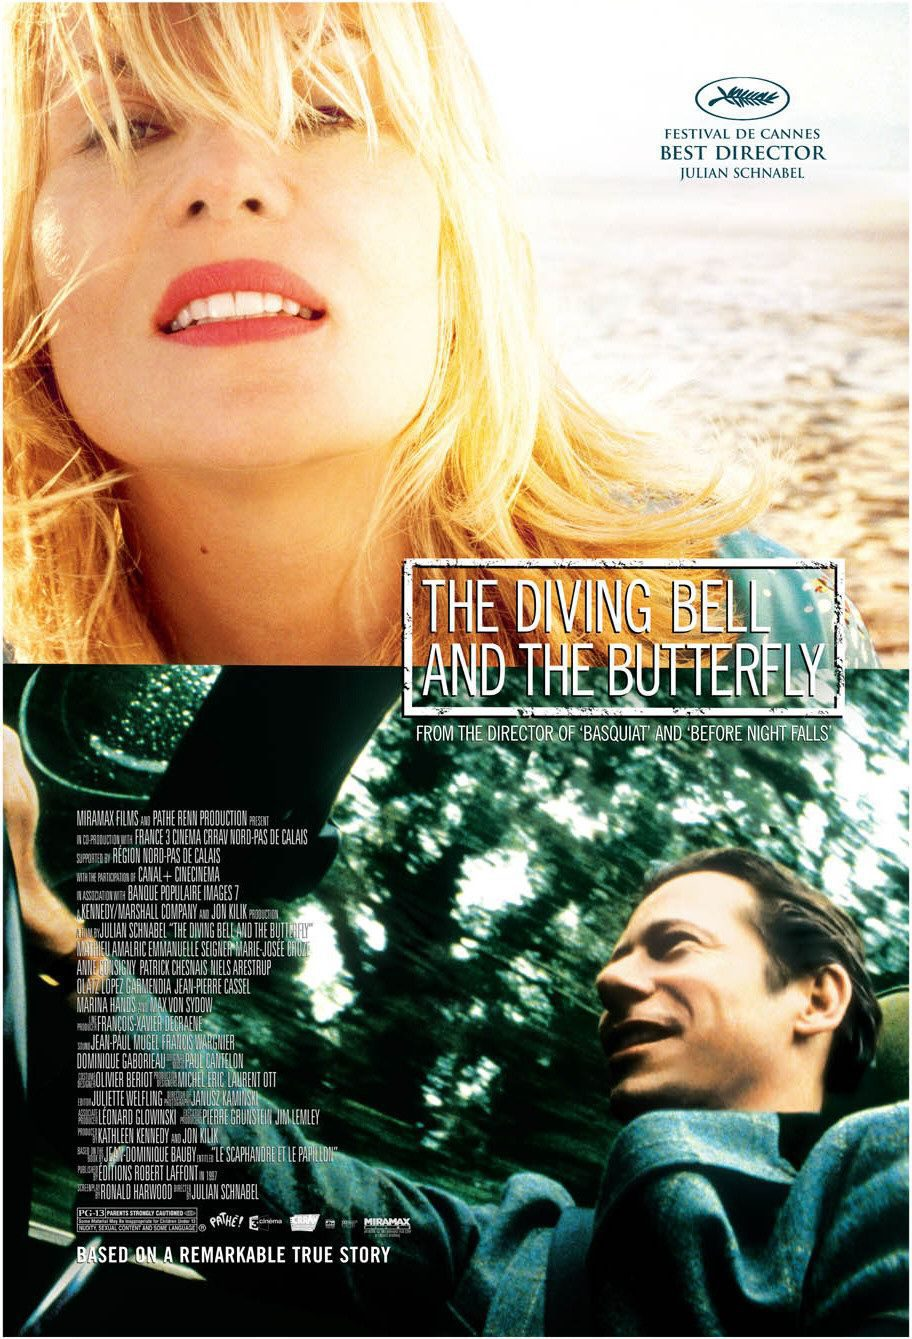 EEUU poster for The Diving Bell and the Butterfly